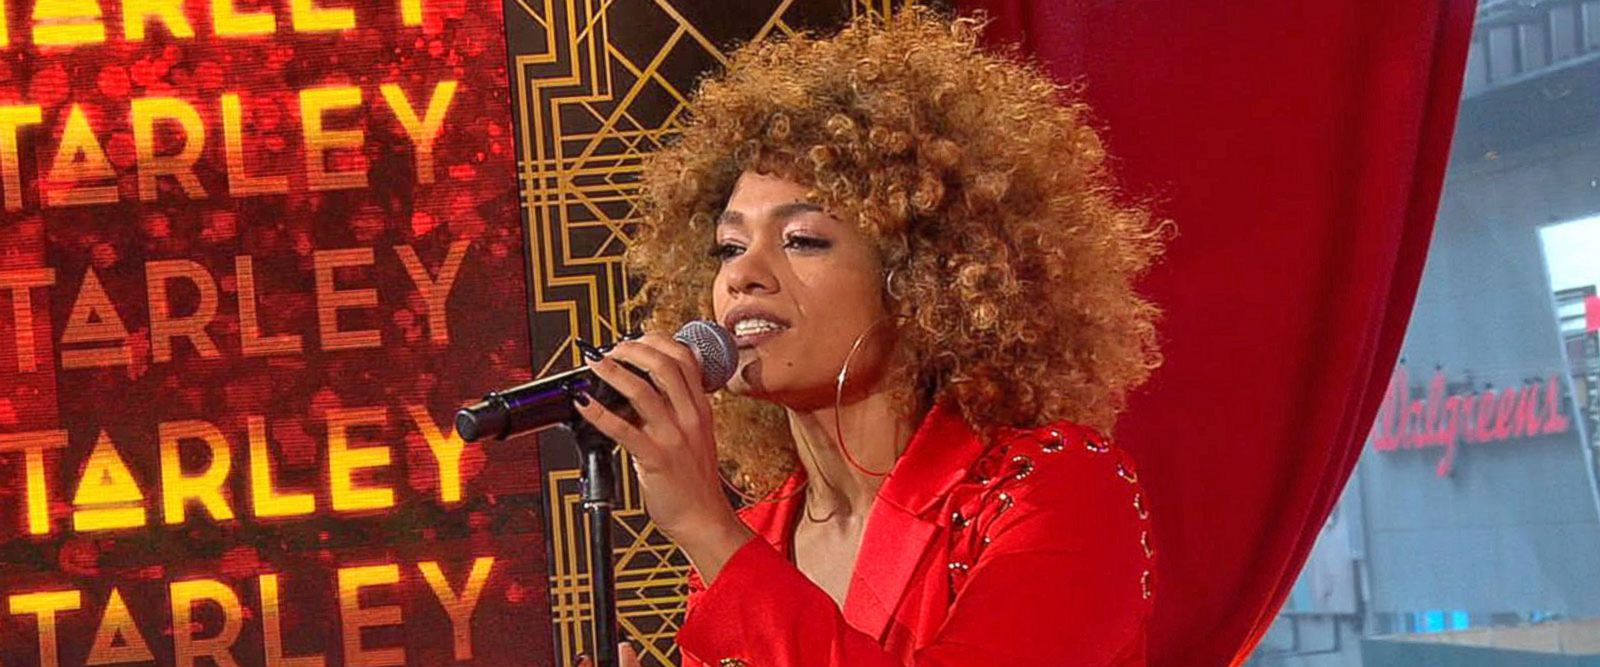 VIDEO: Starley performs a remix of 'Call on Me' live on 'GMA'